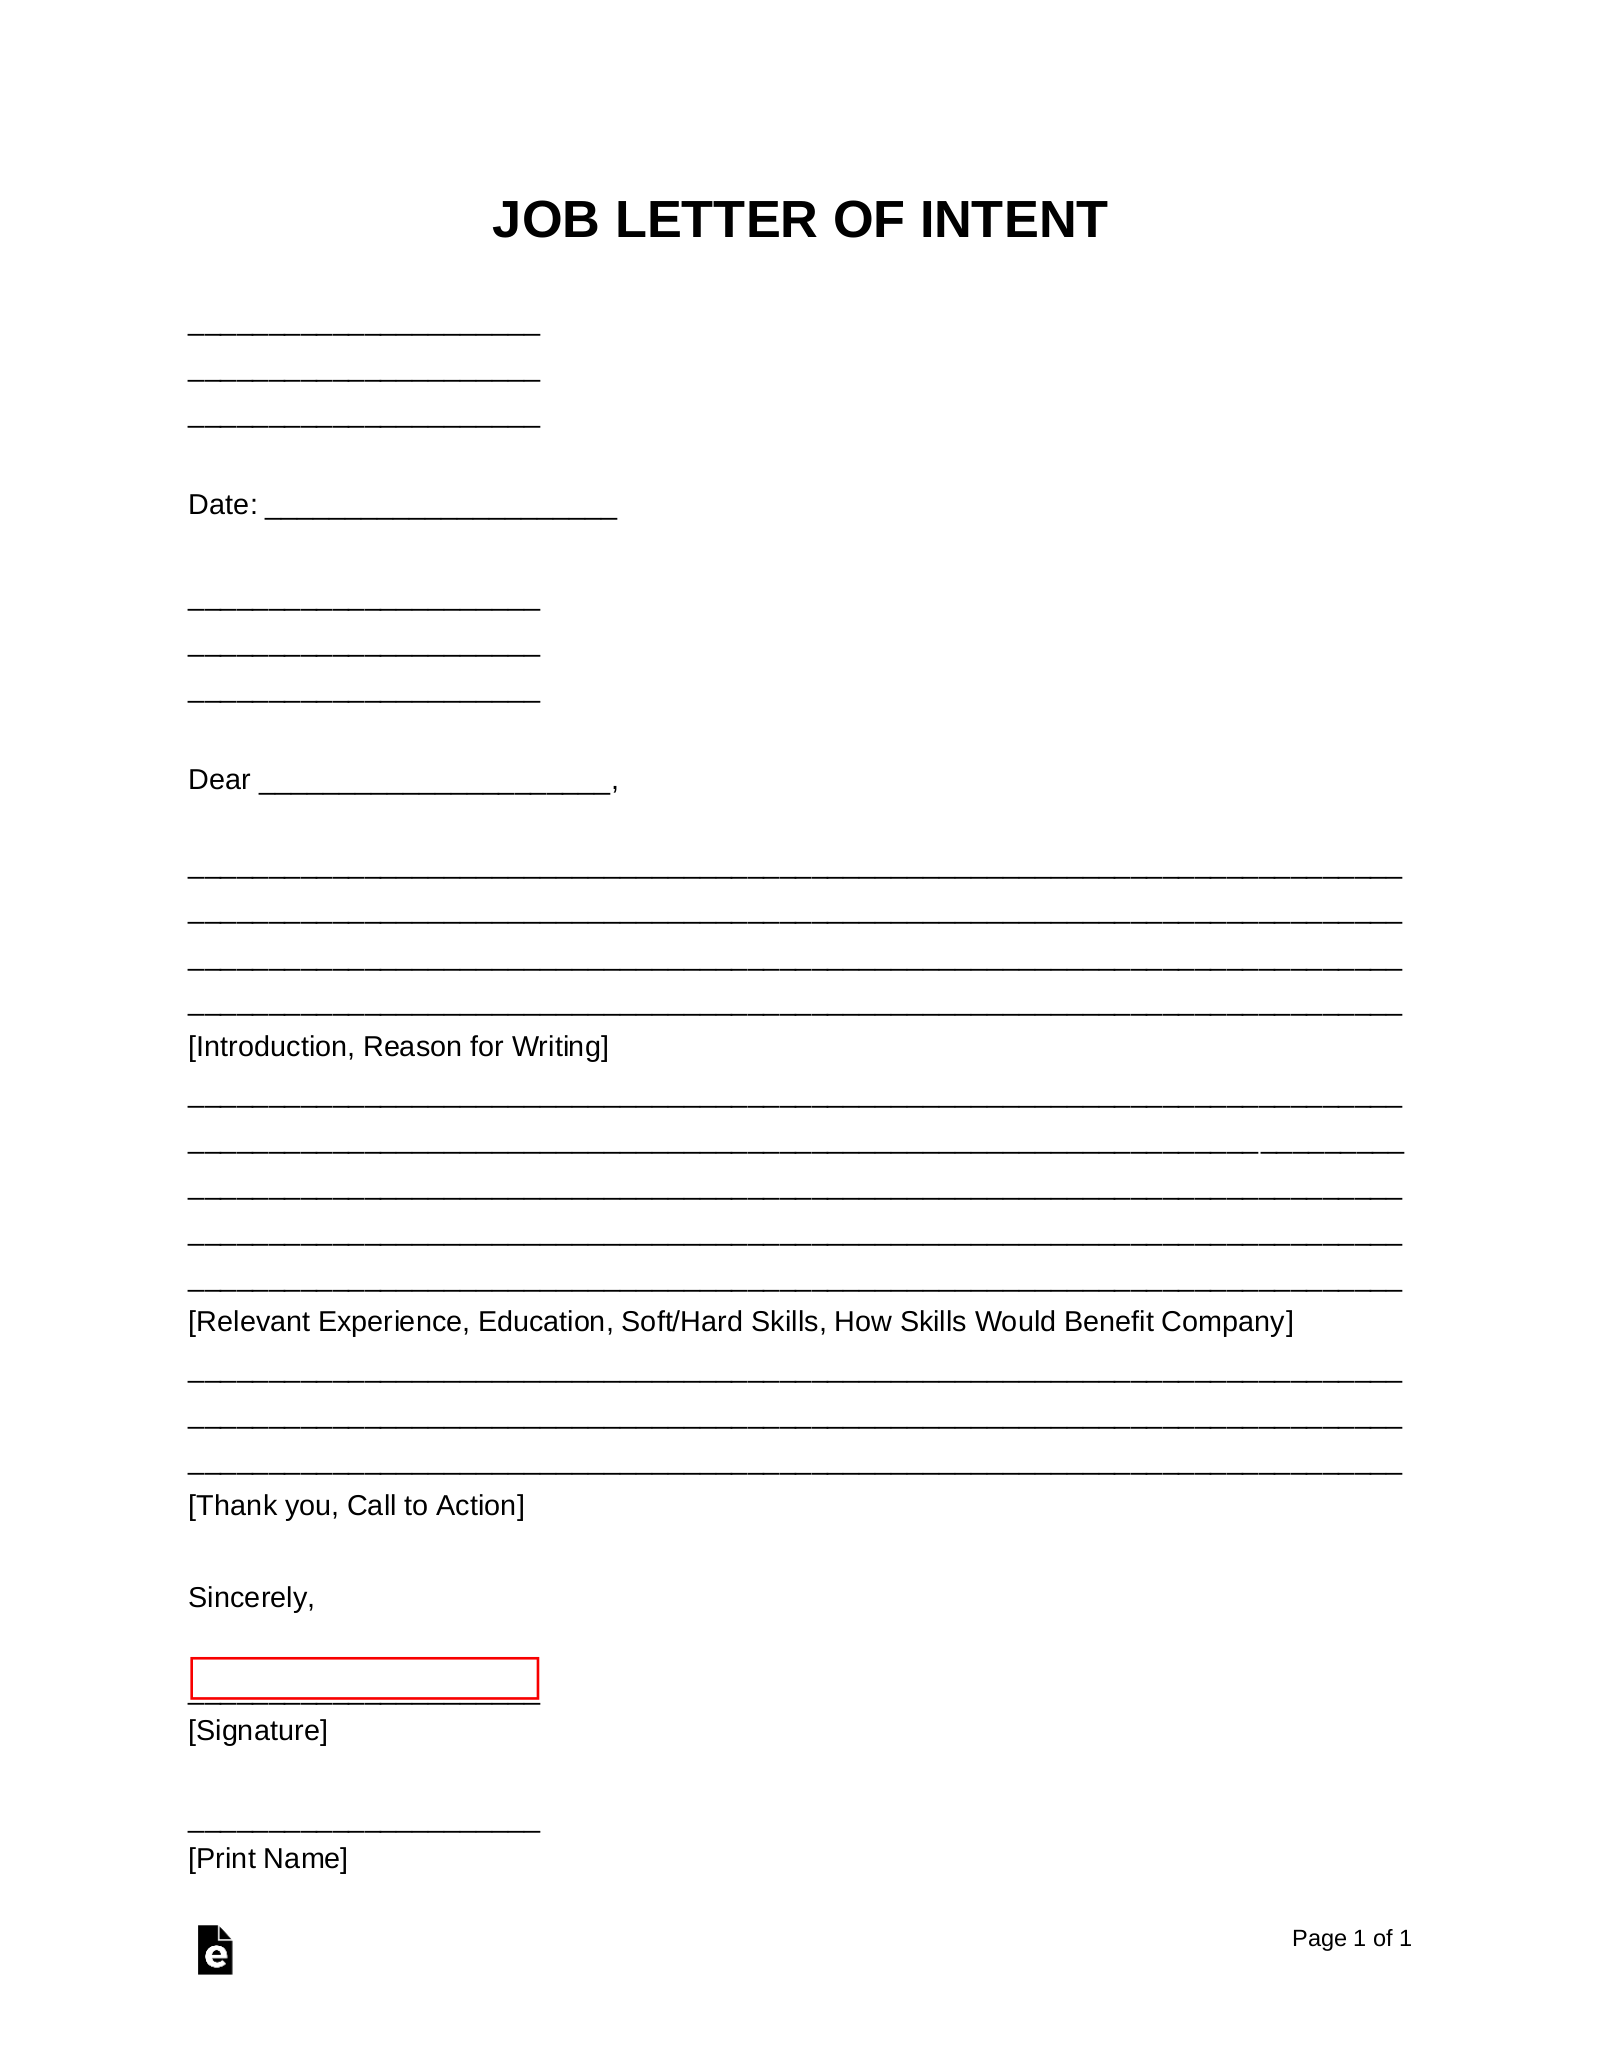 Free Job Letter Of Intent Template Samples Pdf Word Eforms